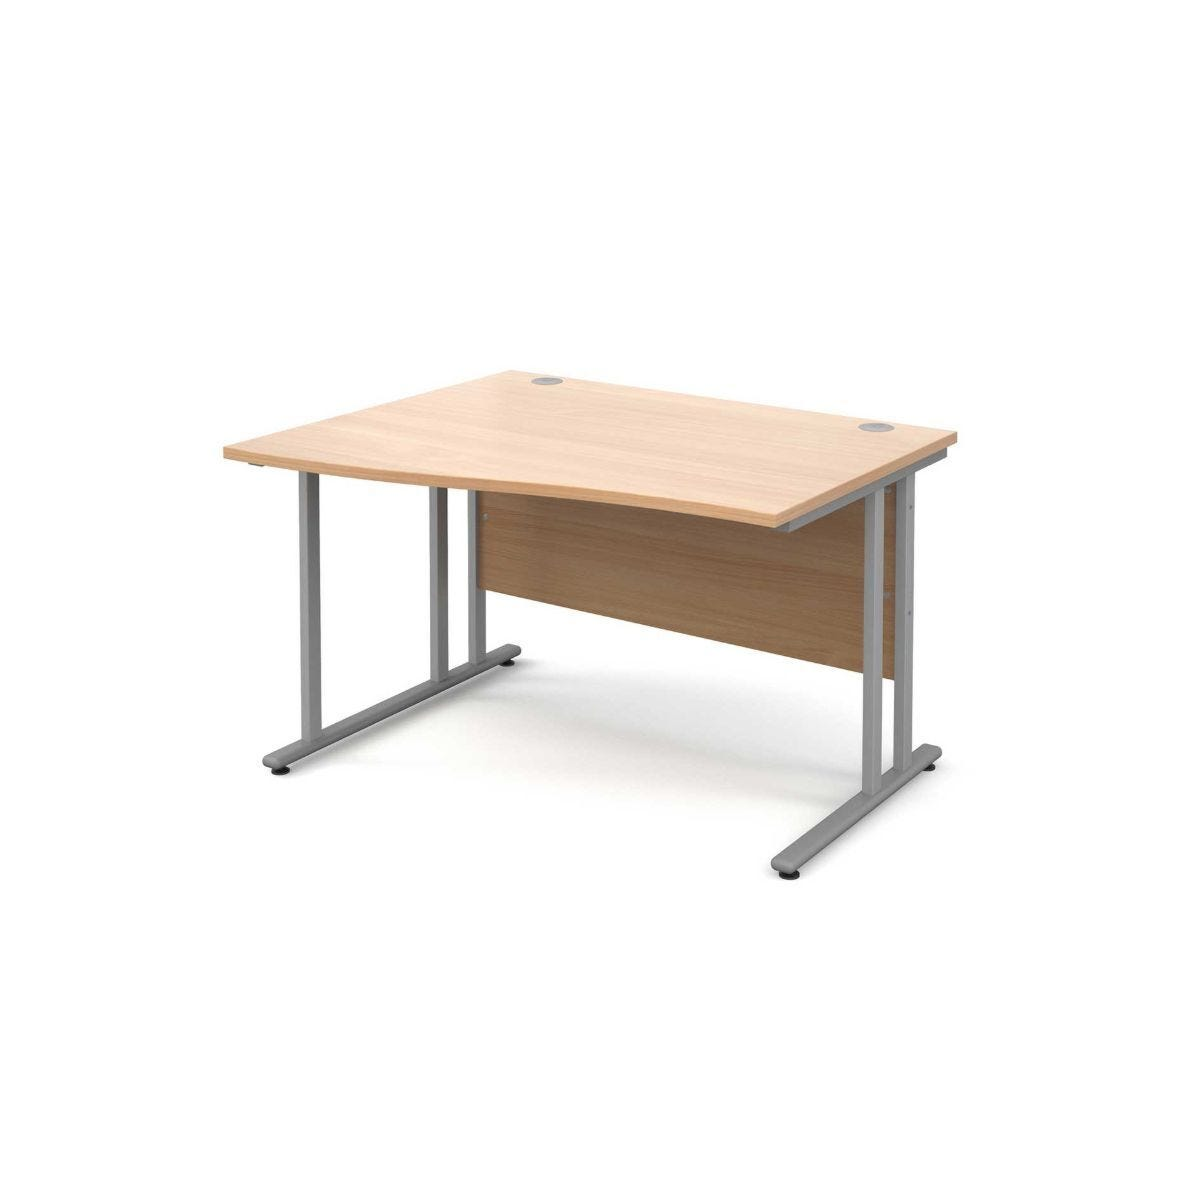 Maestro 25 Left Hand Wave 1200 Desk with Silver Legs